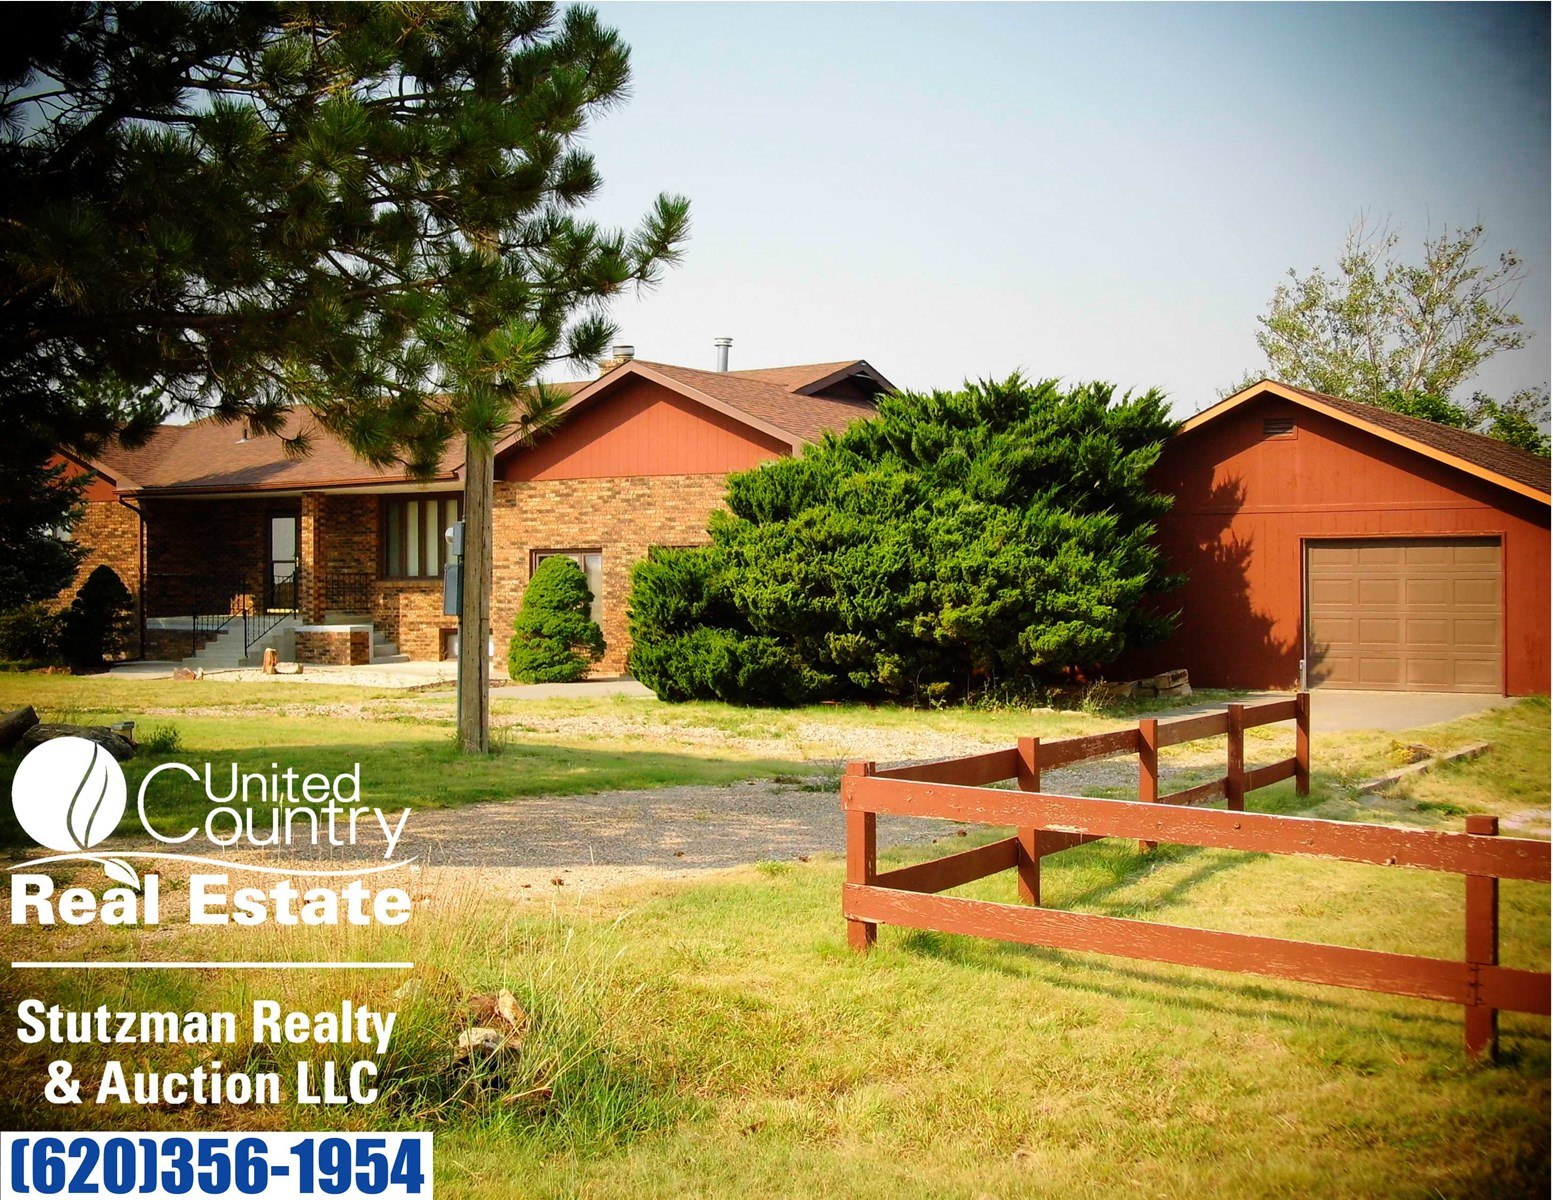 PUBLIC AUCTION  ON A BEAUTIFUL BRICK HOME IN BACA COUNTY, CO